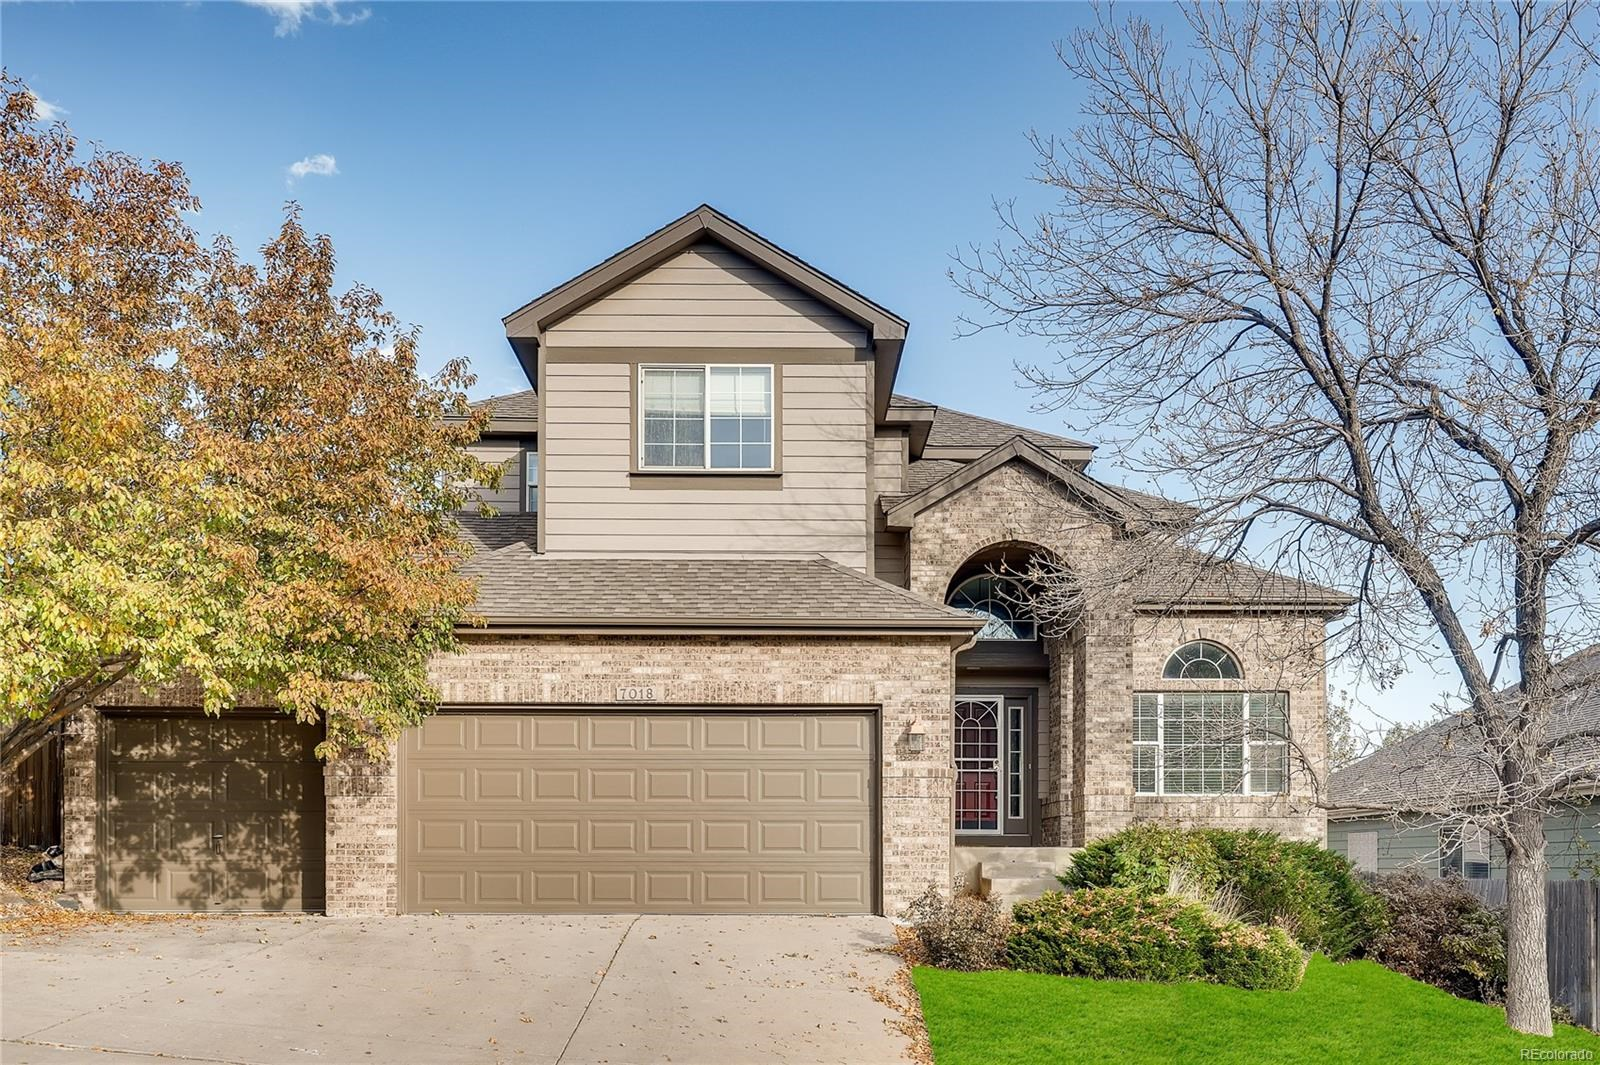 MLS# 2785645 - 1 - 7018 Torrey Street, Arvada, CO 80007